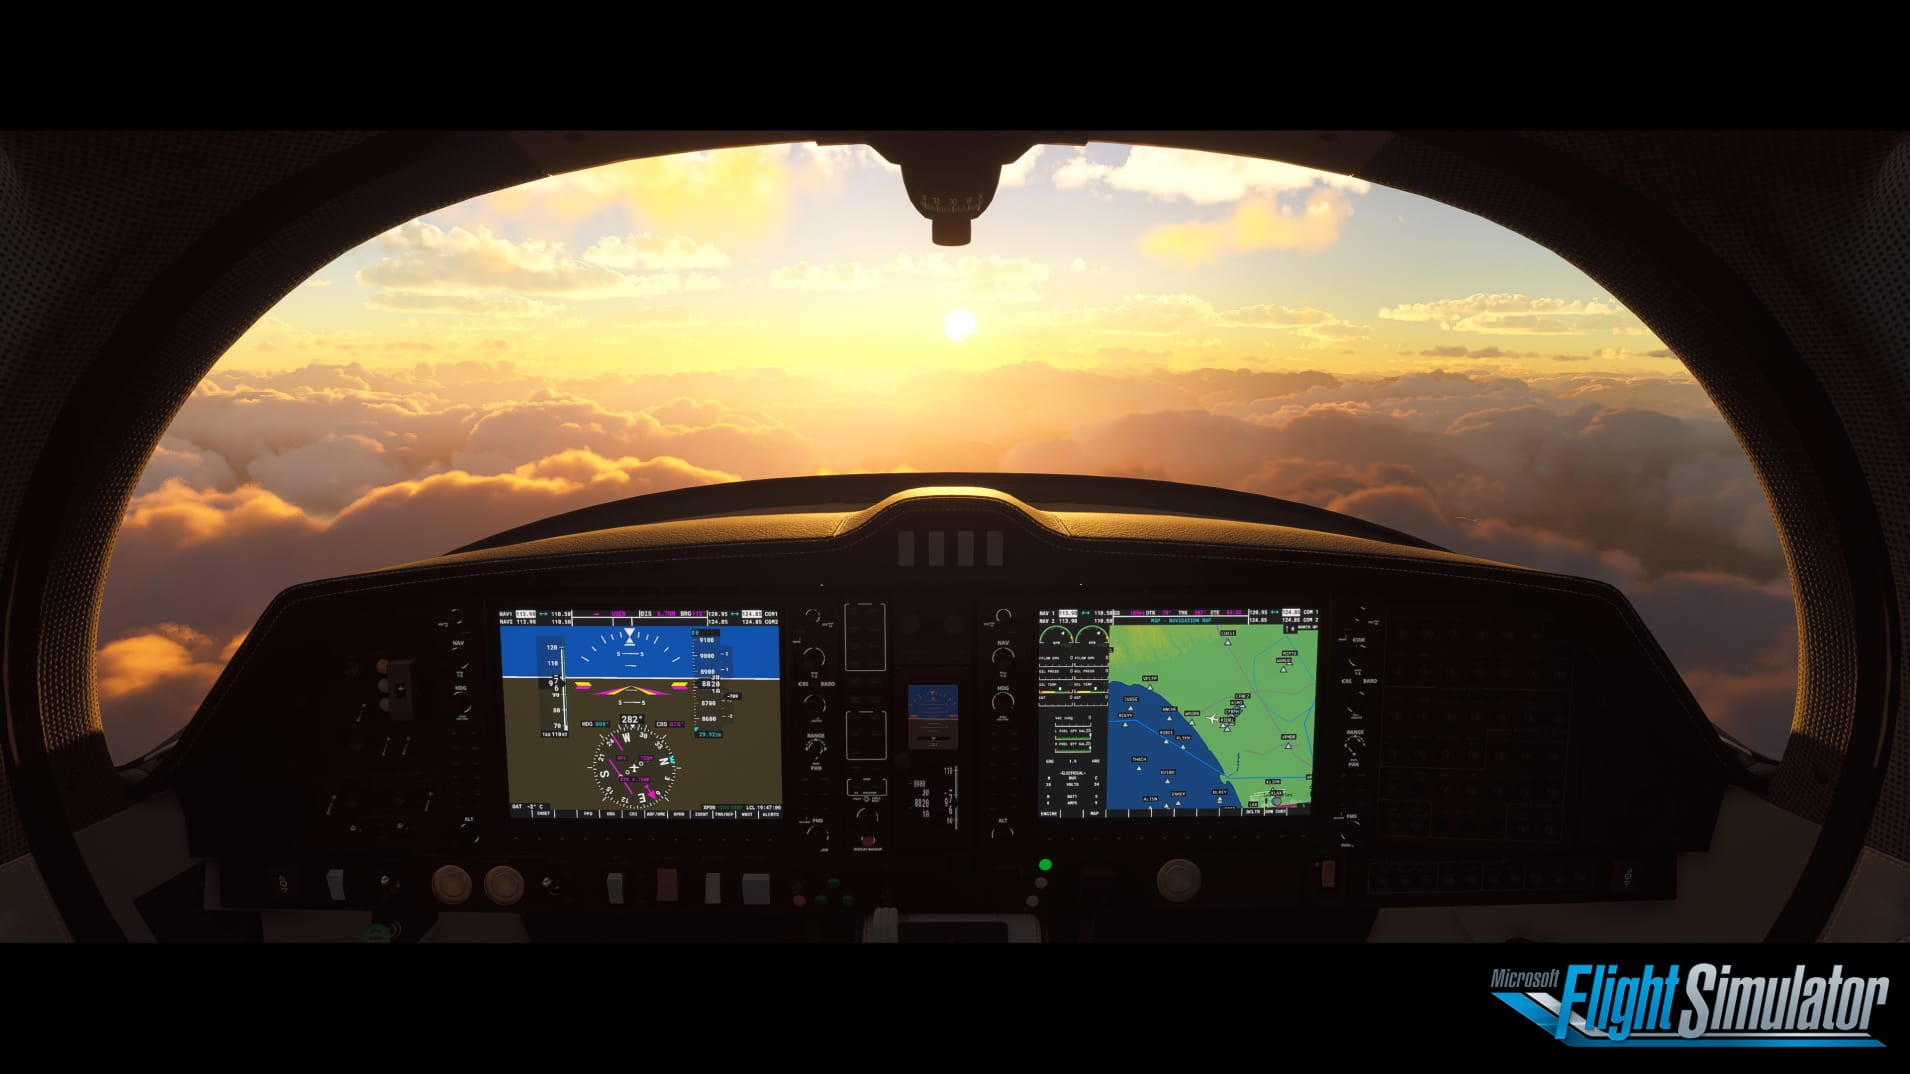 Handout: Microsoft Flight Simulator 2020 E3